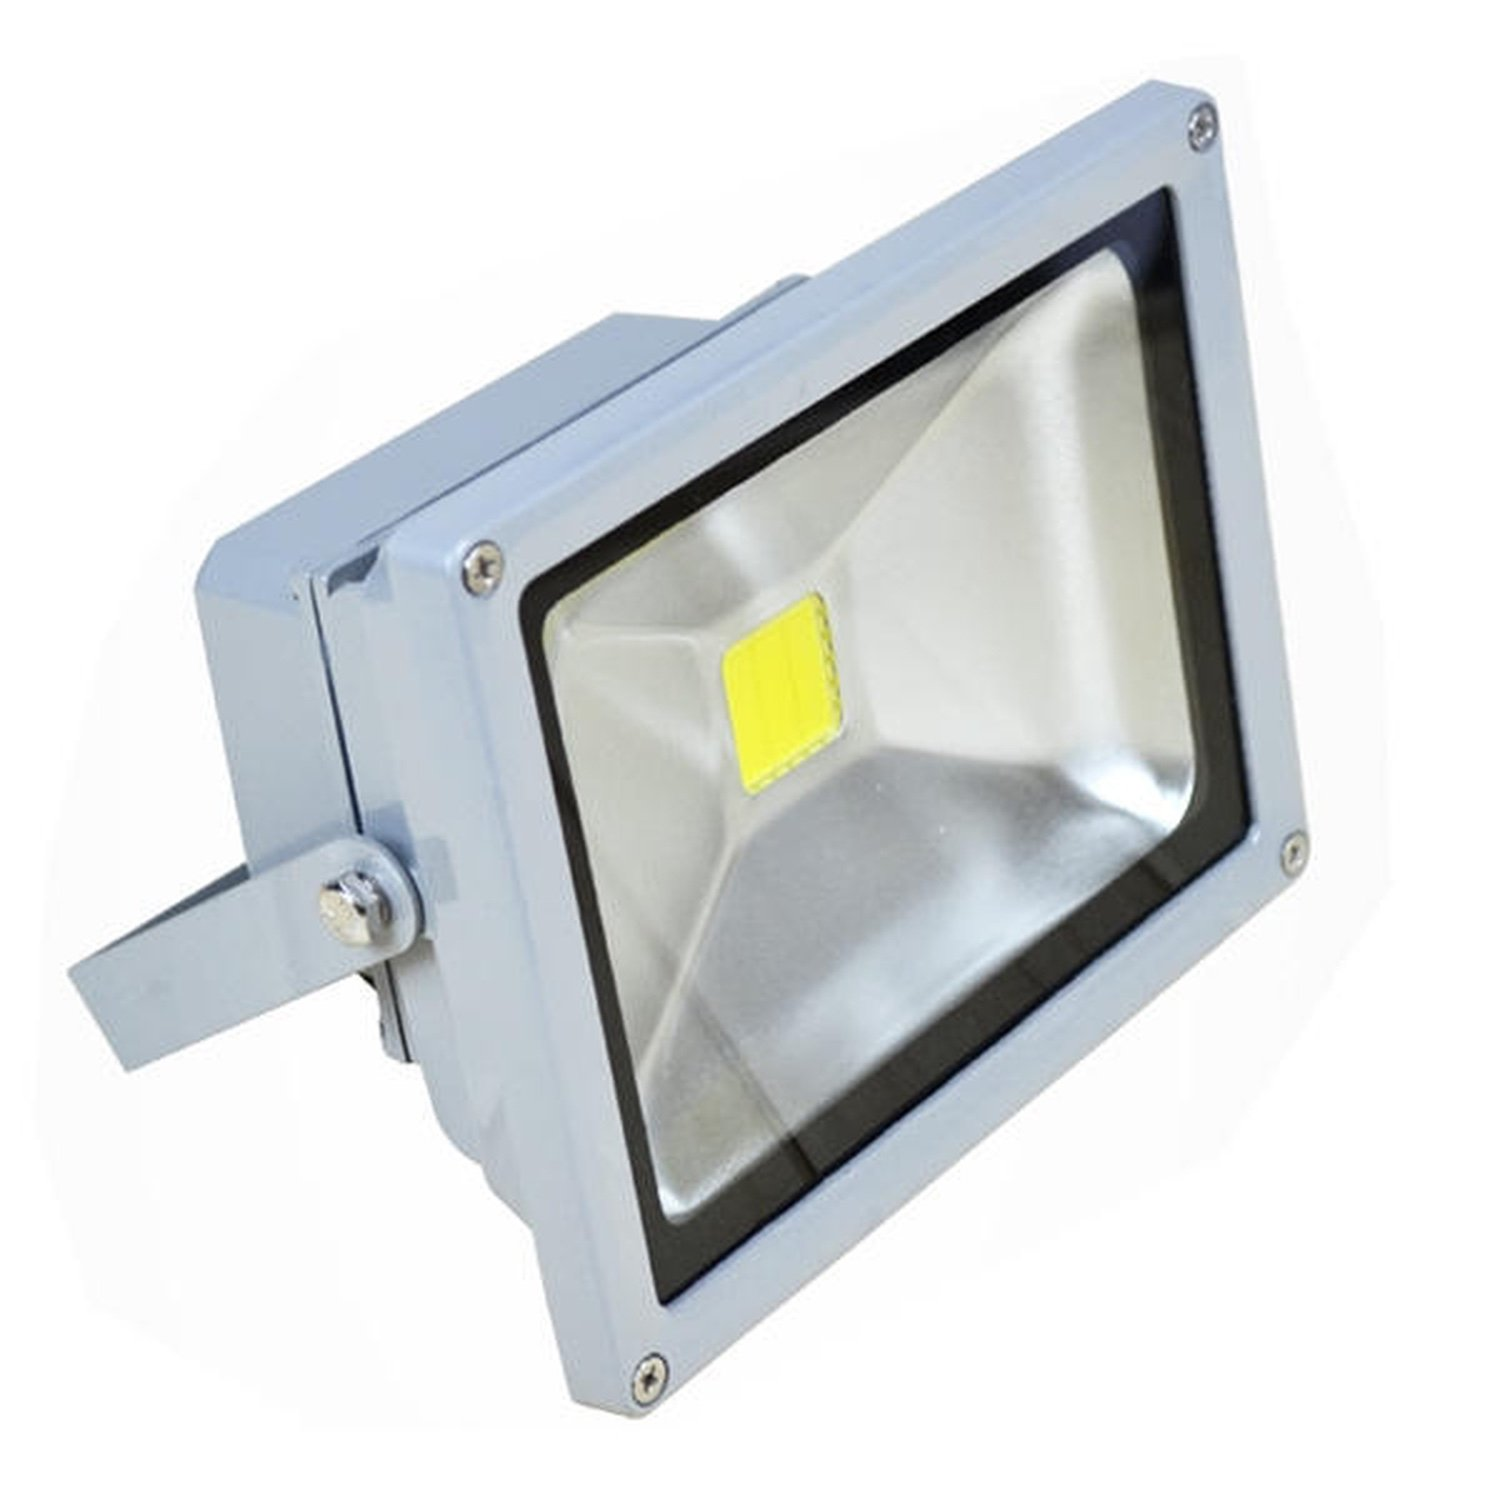 LED Spotlight Spotlight 20W 6000K Bright Light